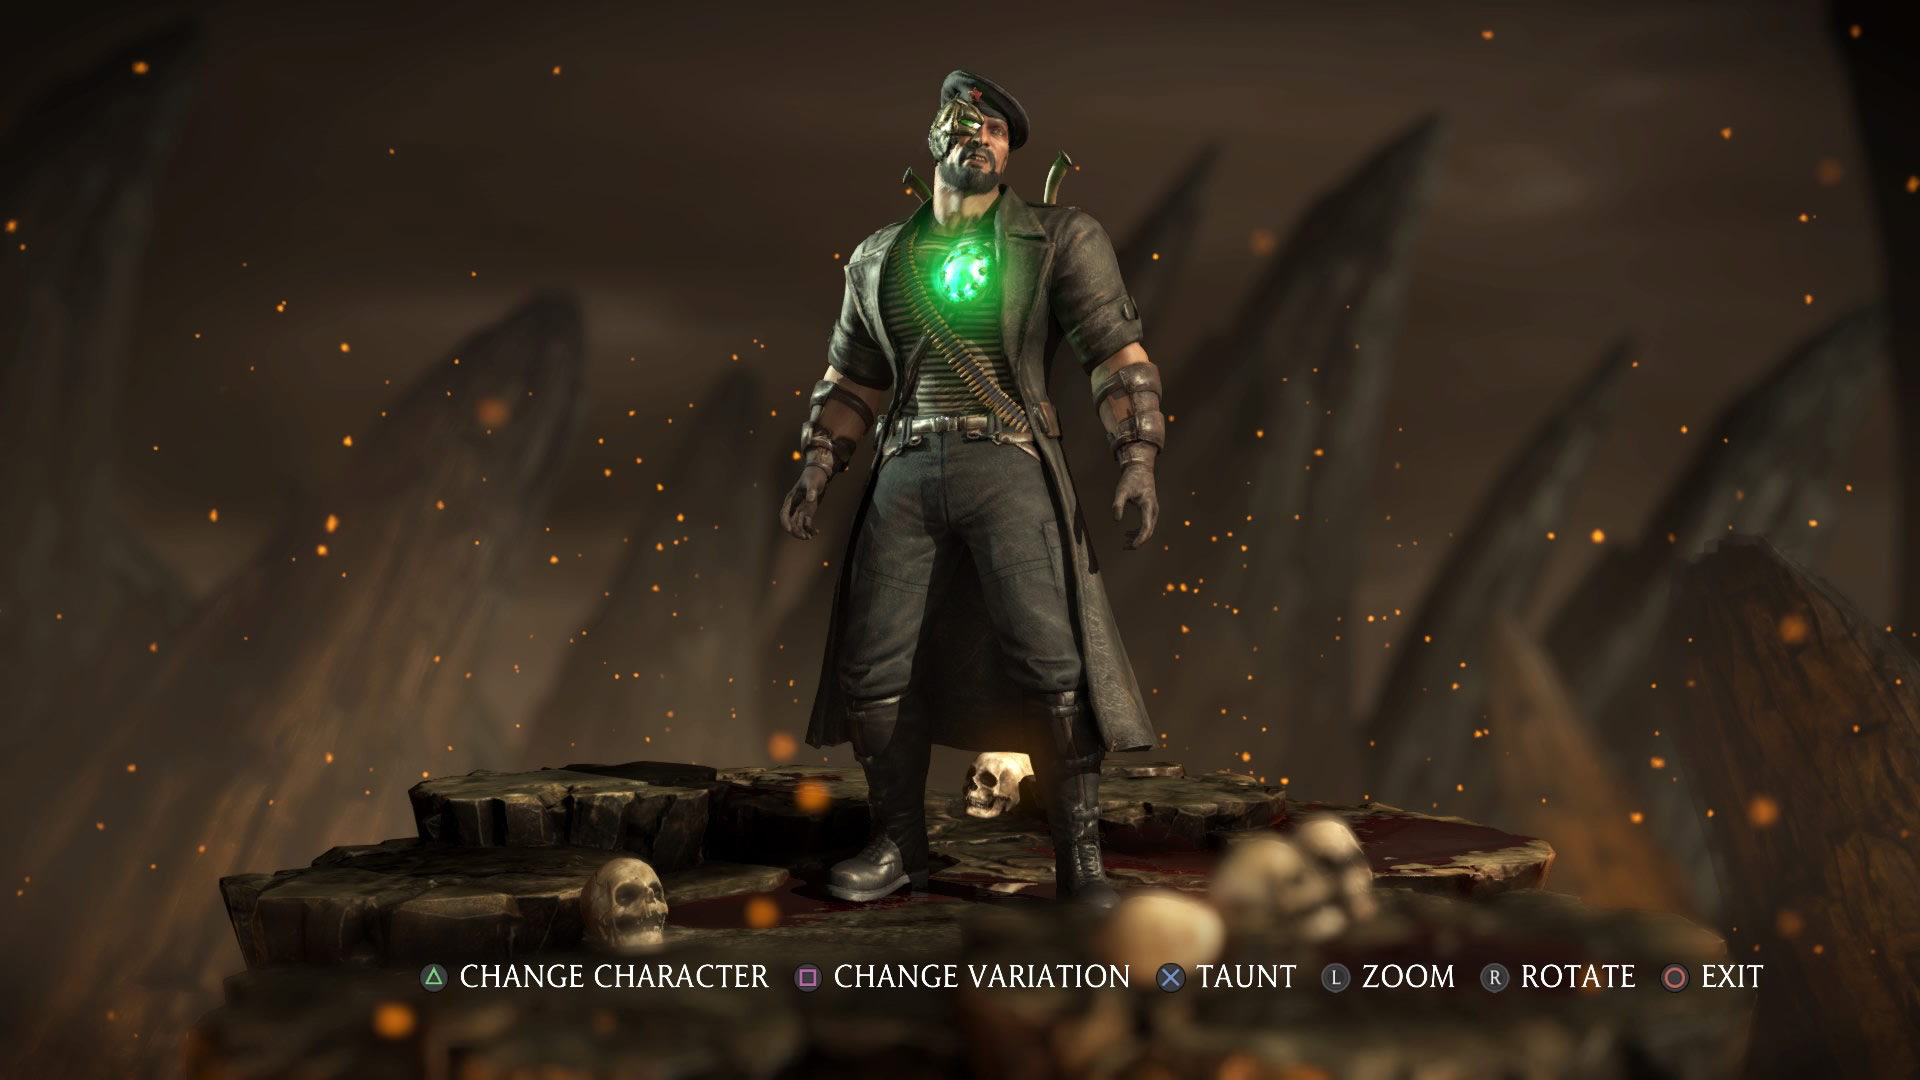 Mortal Kombat XL Kombat Pack 2  10 out of 14 image gallery